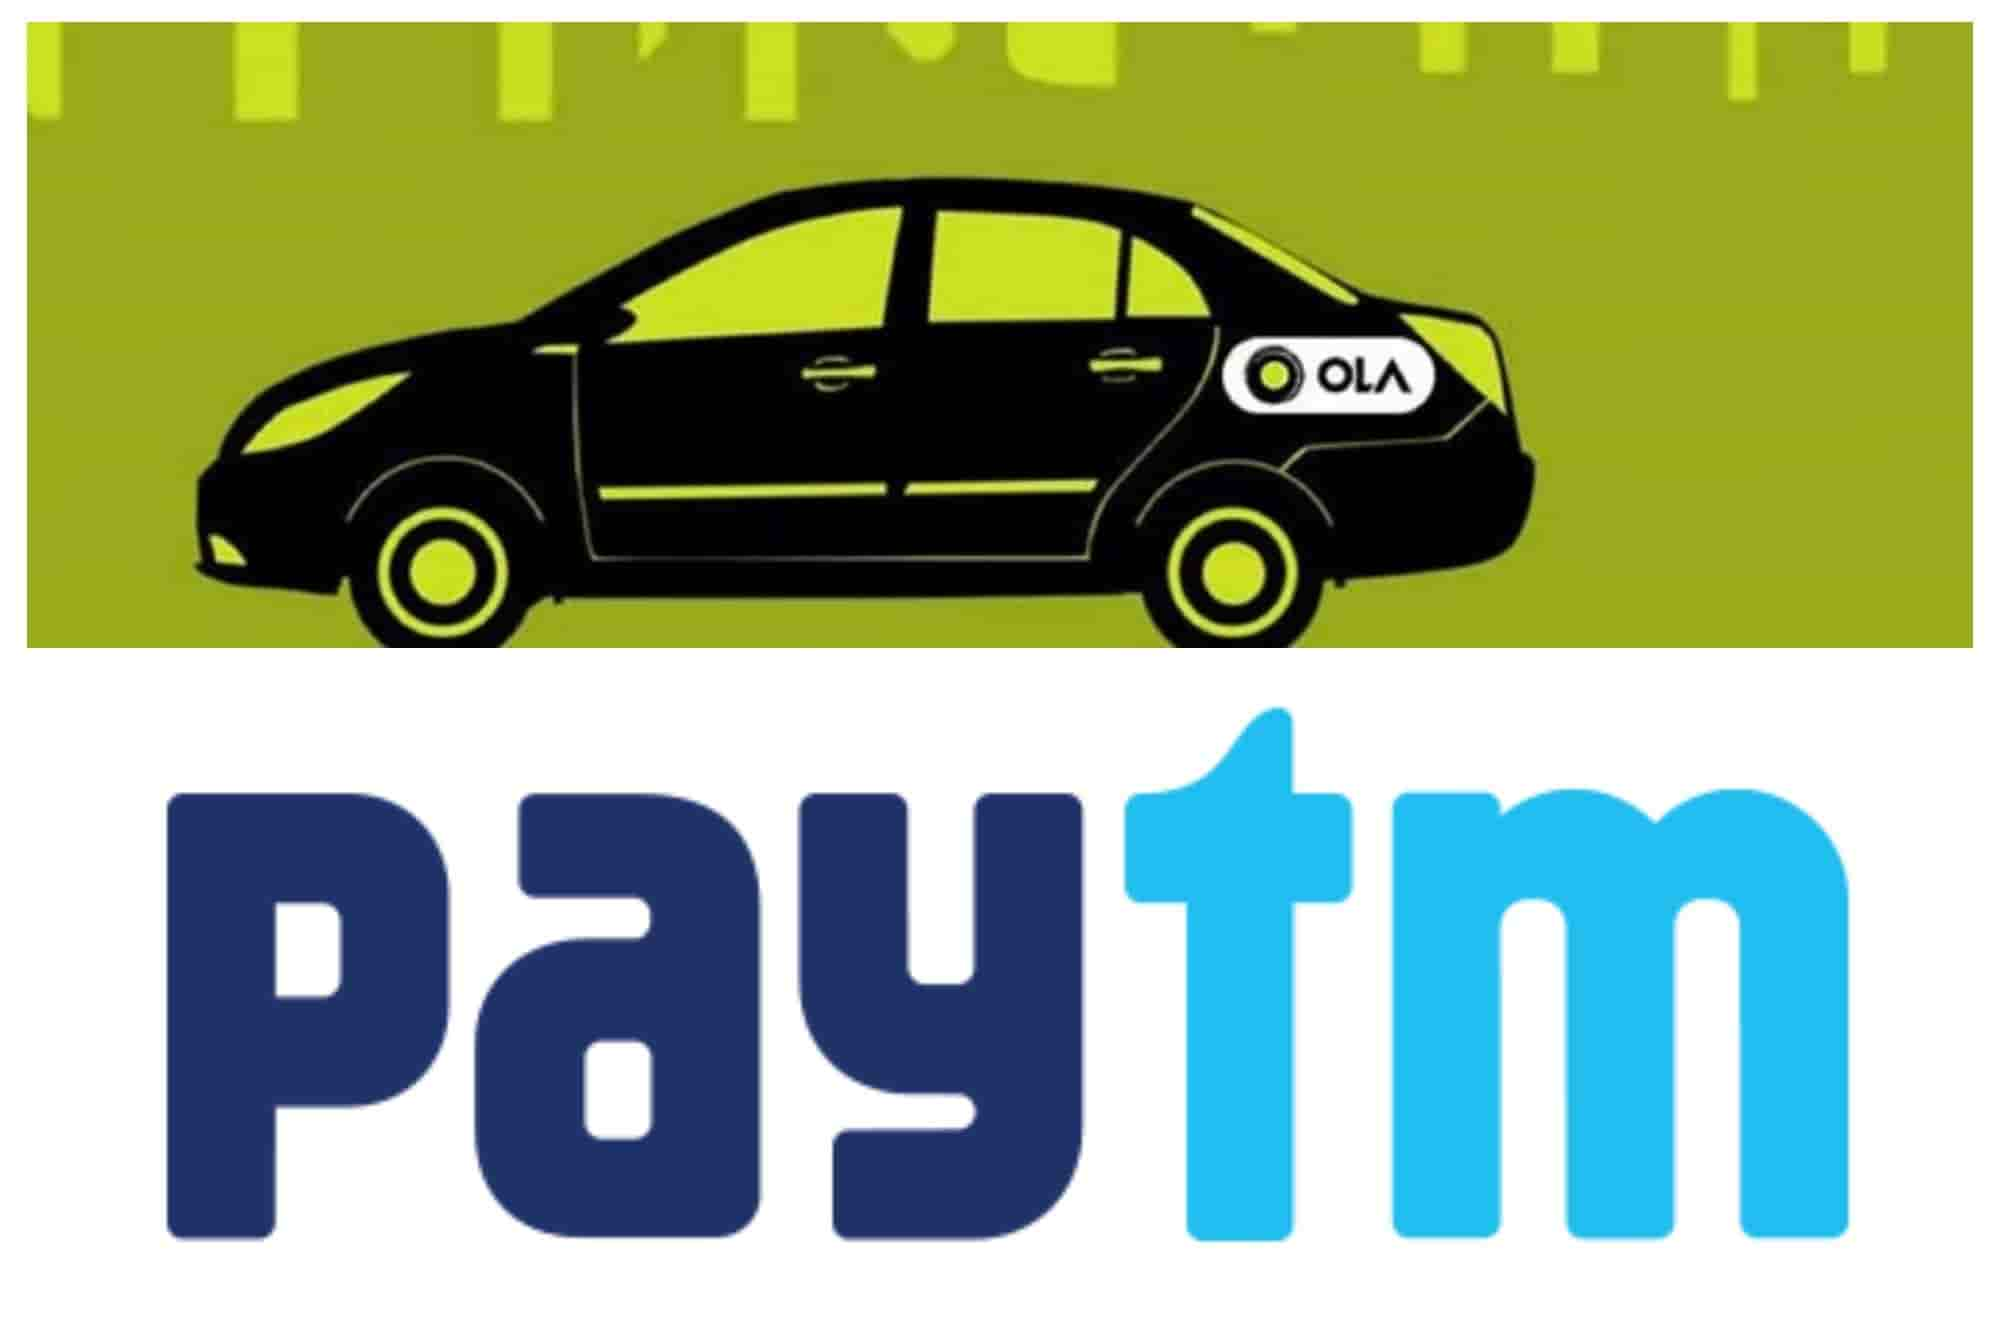 how to pay ola using paytm